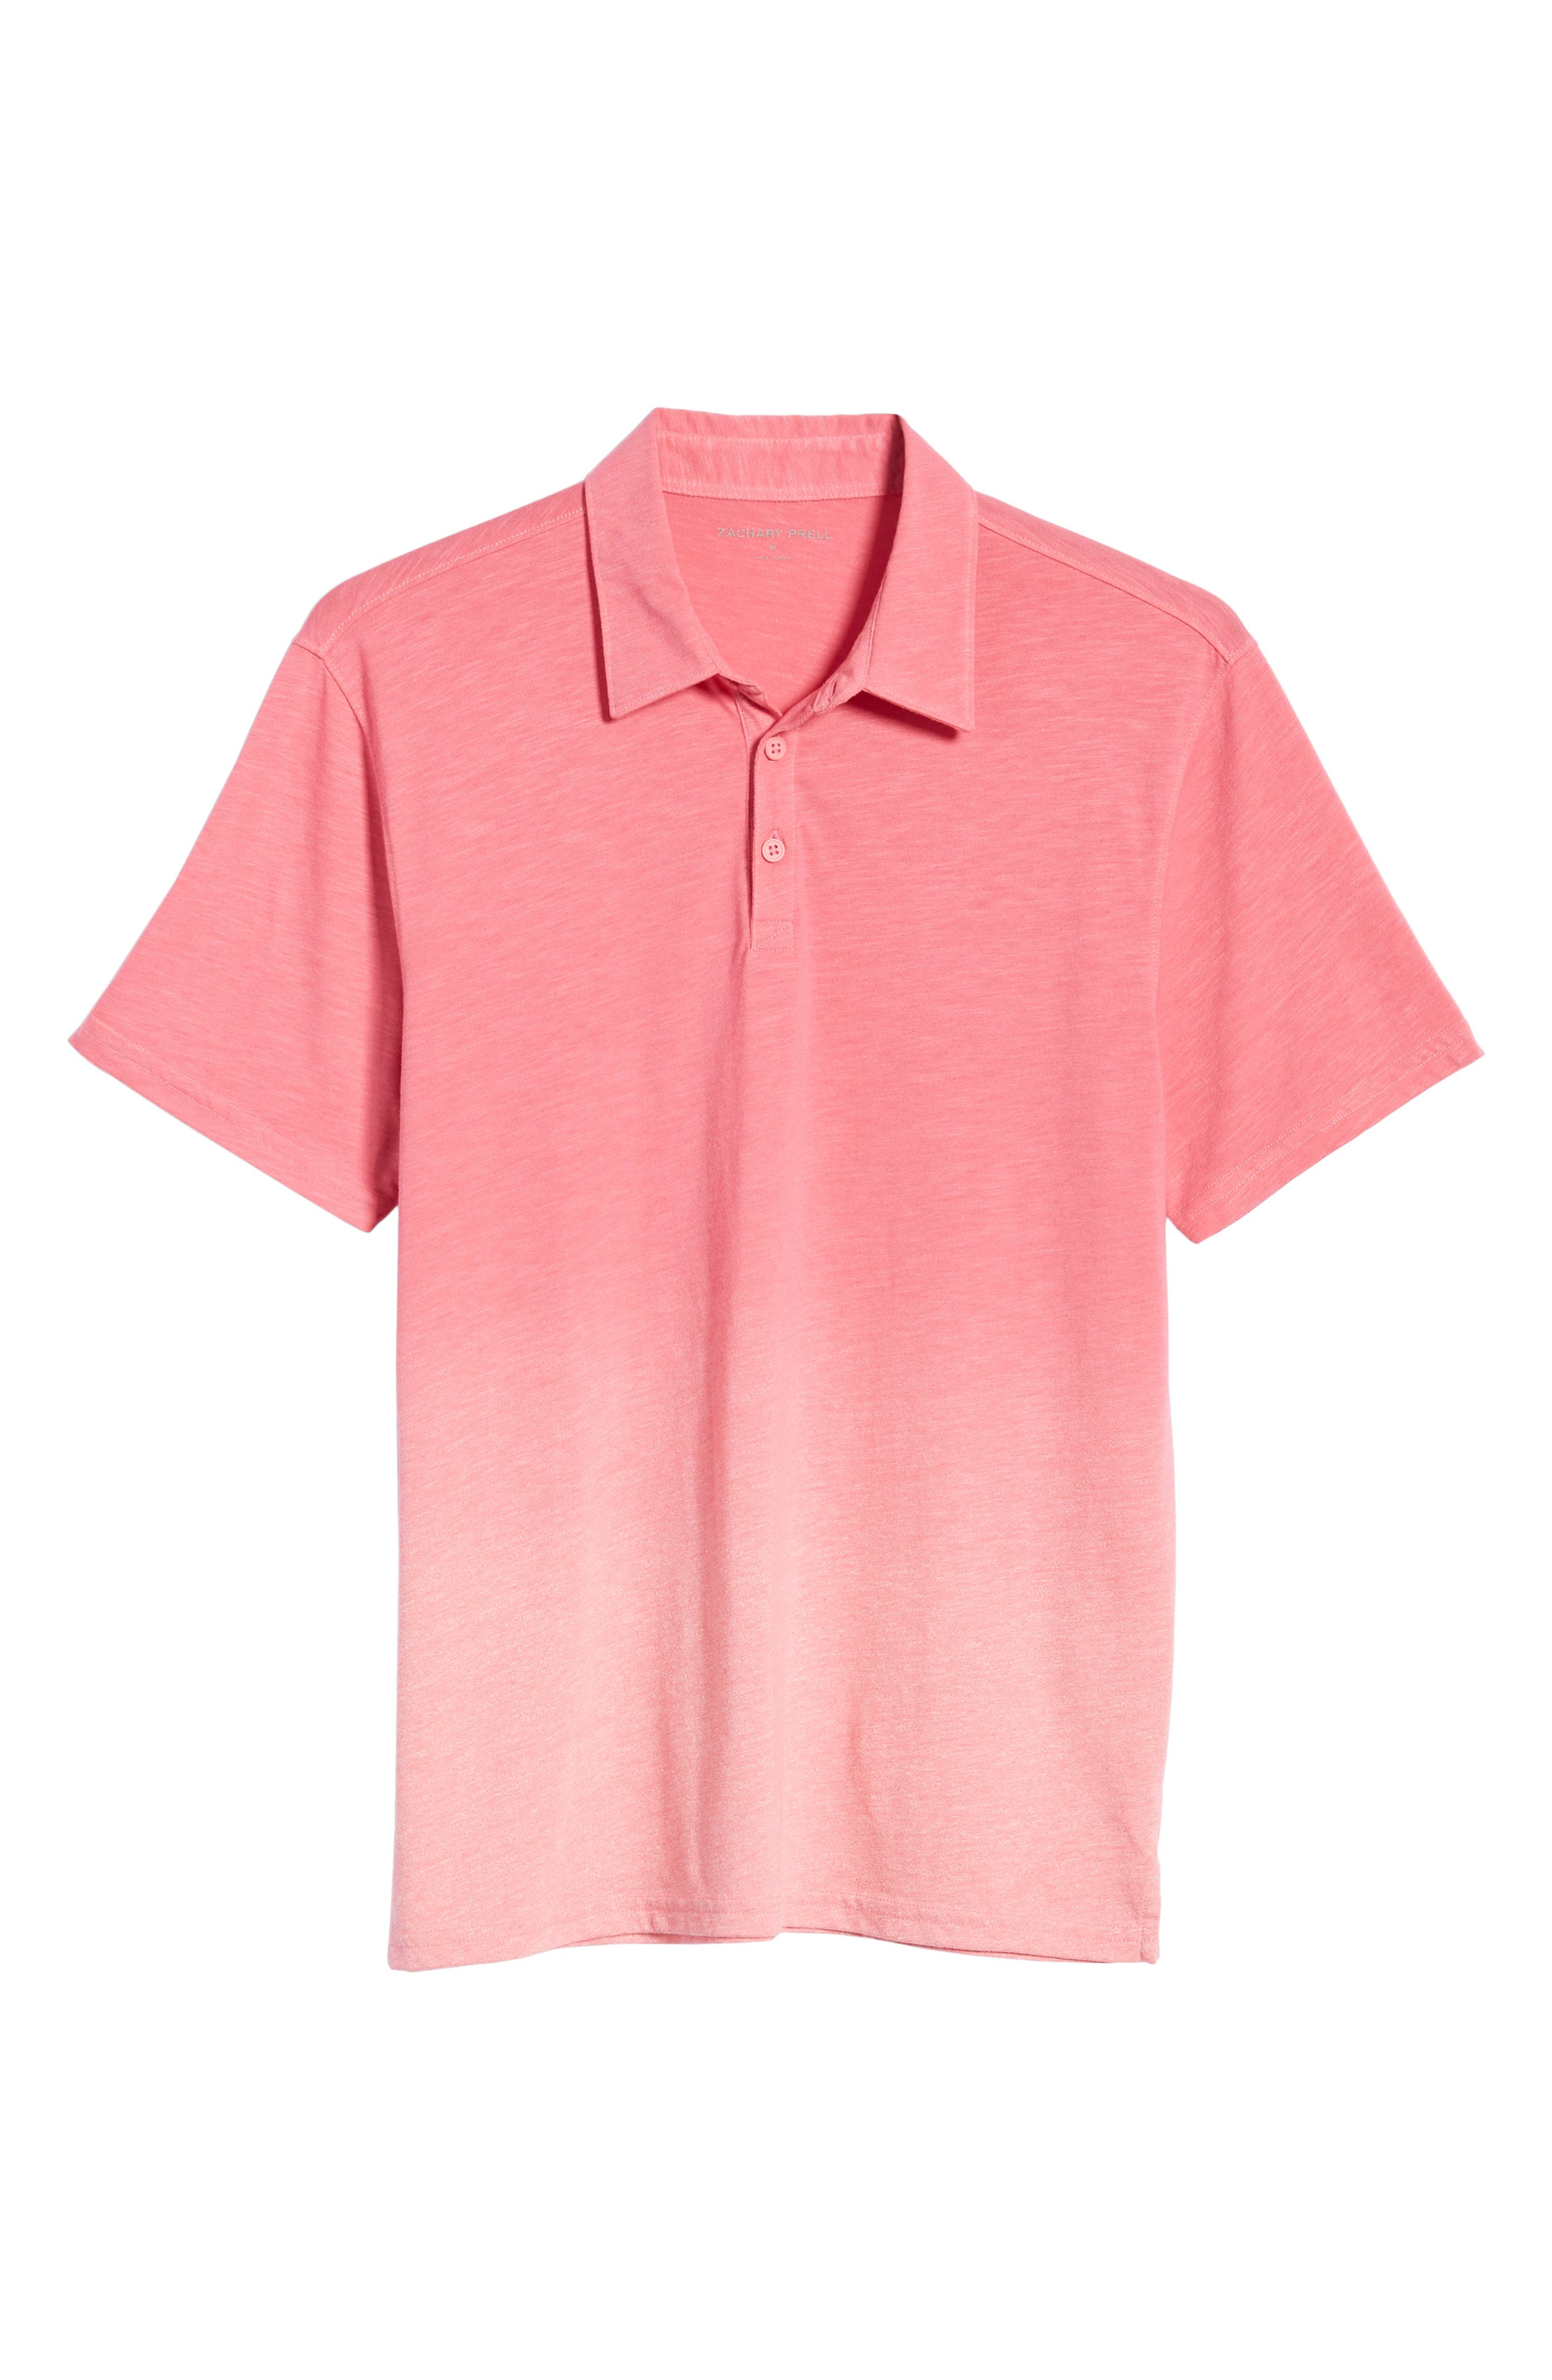 ZACHARY PRELL, Shelter Island Dip Dye Polo, Alternate thumbnail 6, color, BRIGHT PINK